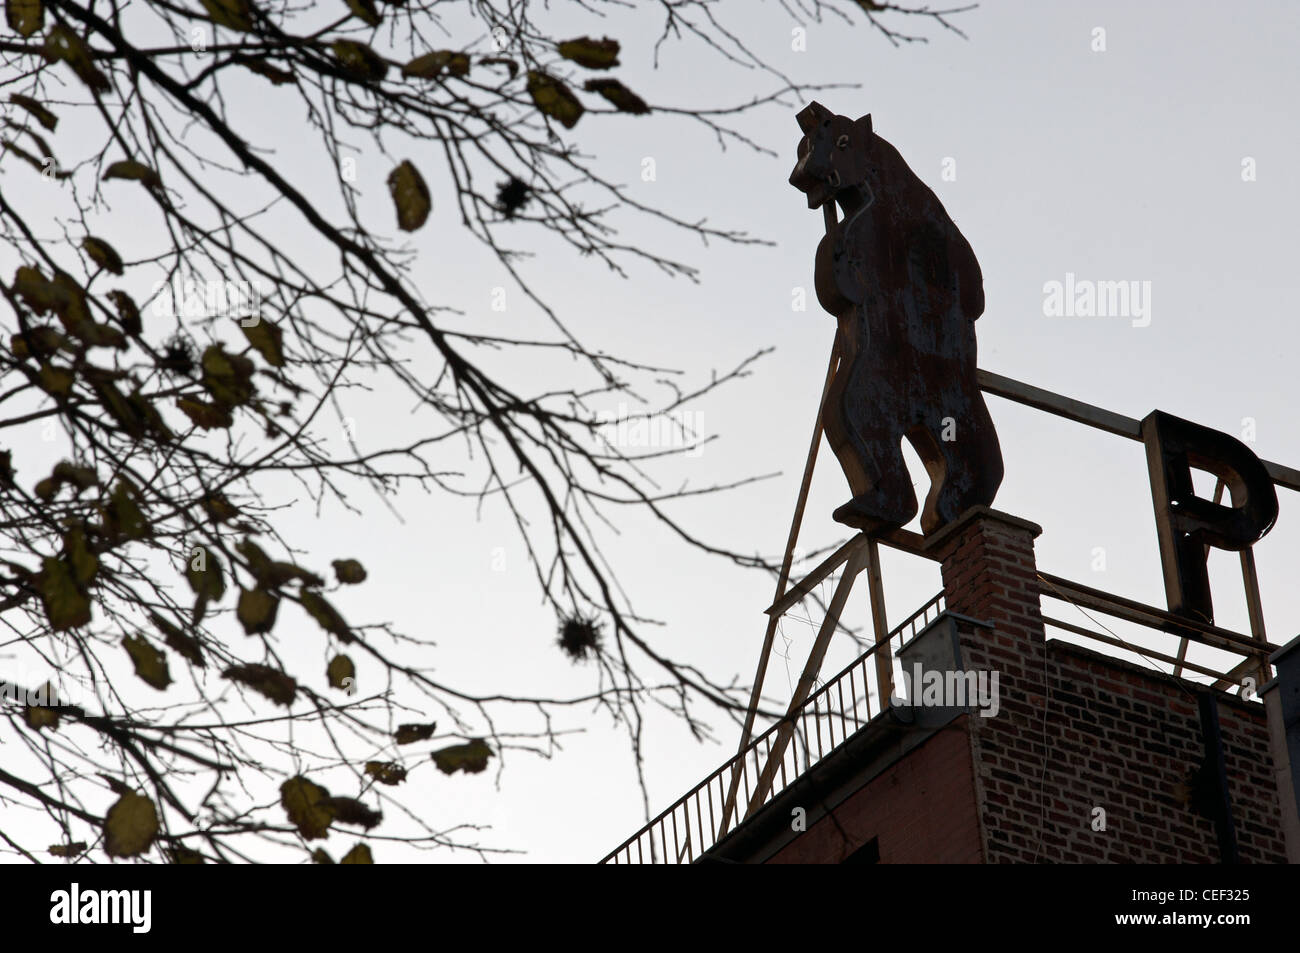 Life size figure of a bear used in advertising on the rooftop of an apartment block, Aachen, Germany. - Stock Image